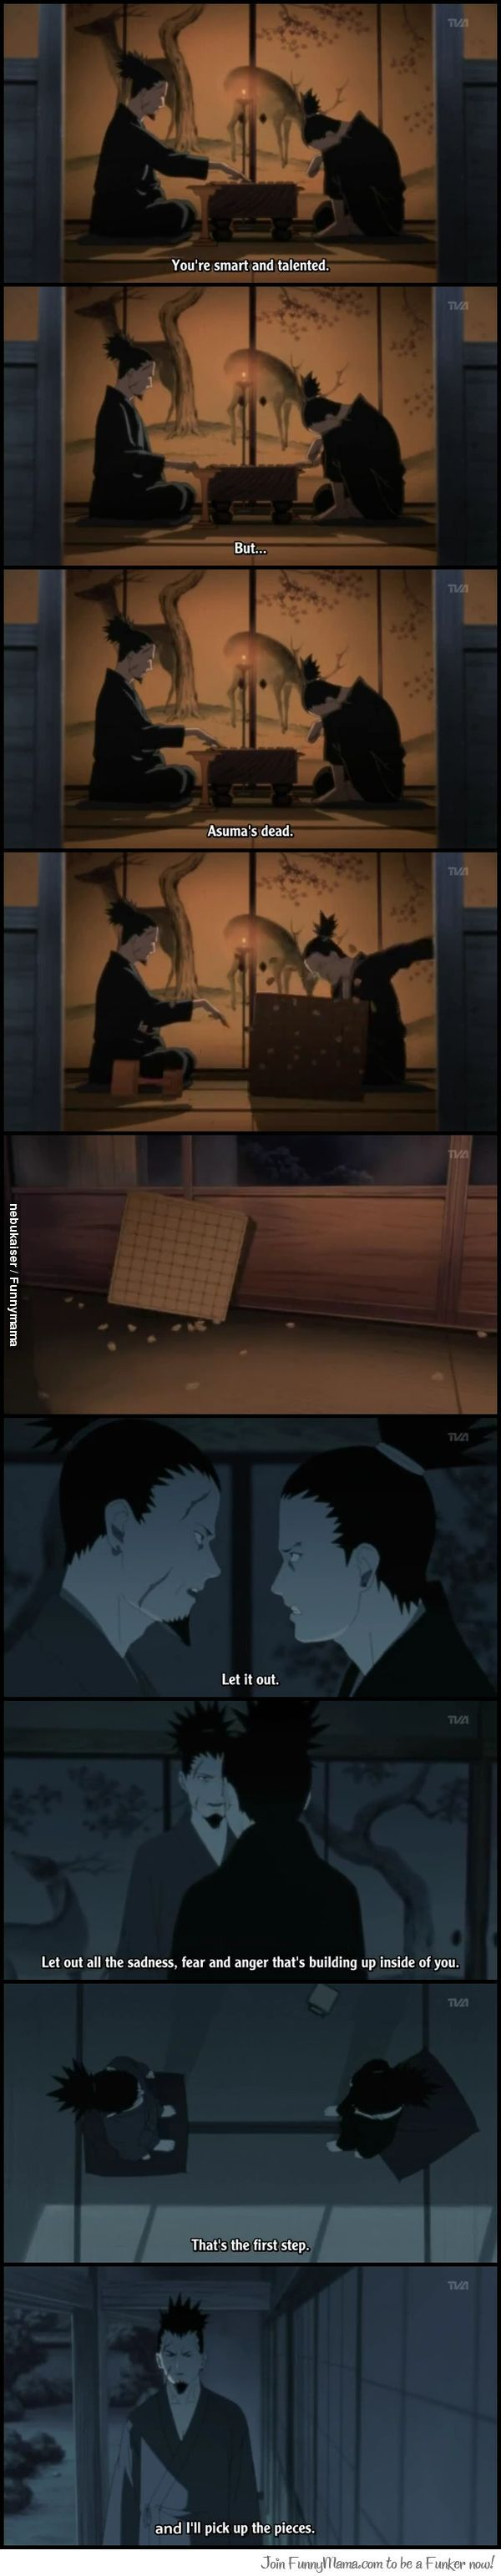 Let It All Out & I'll Pick Up The Pieces. i love shikamaru's dad. <3 this is one of my most favorite scene in the series